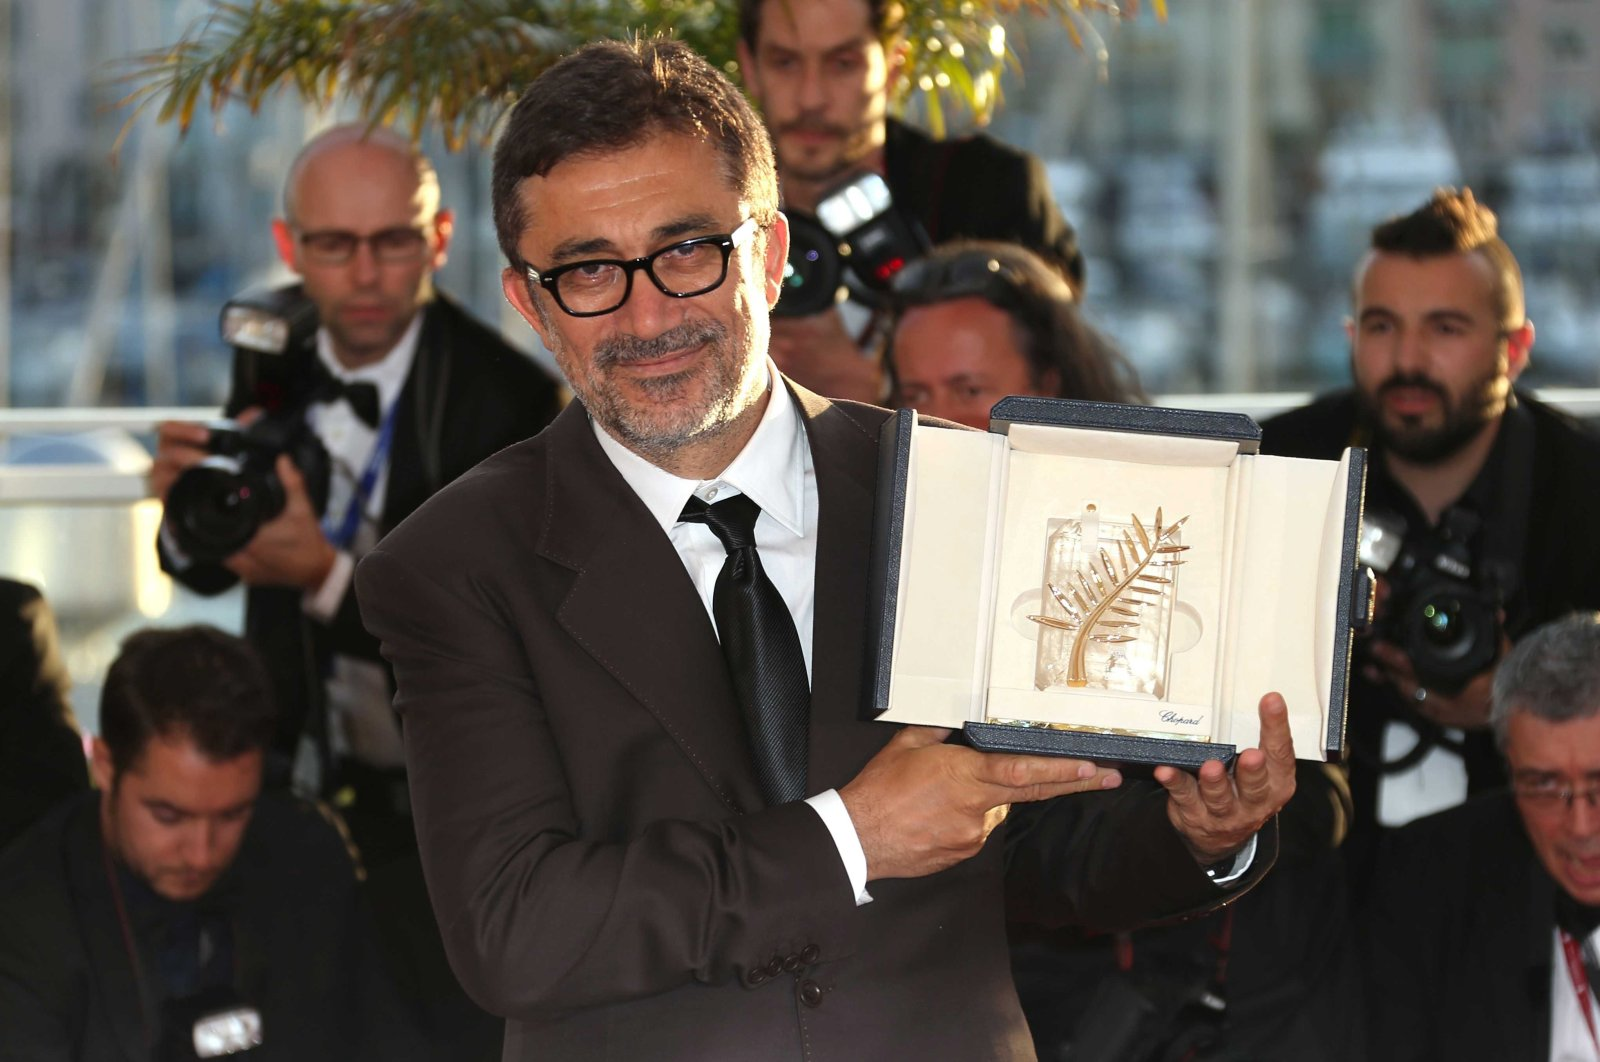 """Director Nuri Bilge Ceylan poses with the Palme d'Or award for the film """"Winter Sleep"""" during a photo-call following the awards ceremony at the 67th international film festival, Cannes, southern France, May 24, 2014. (AP PHOTO)"""